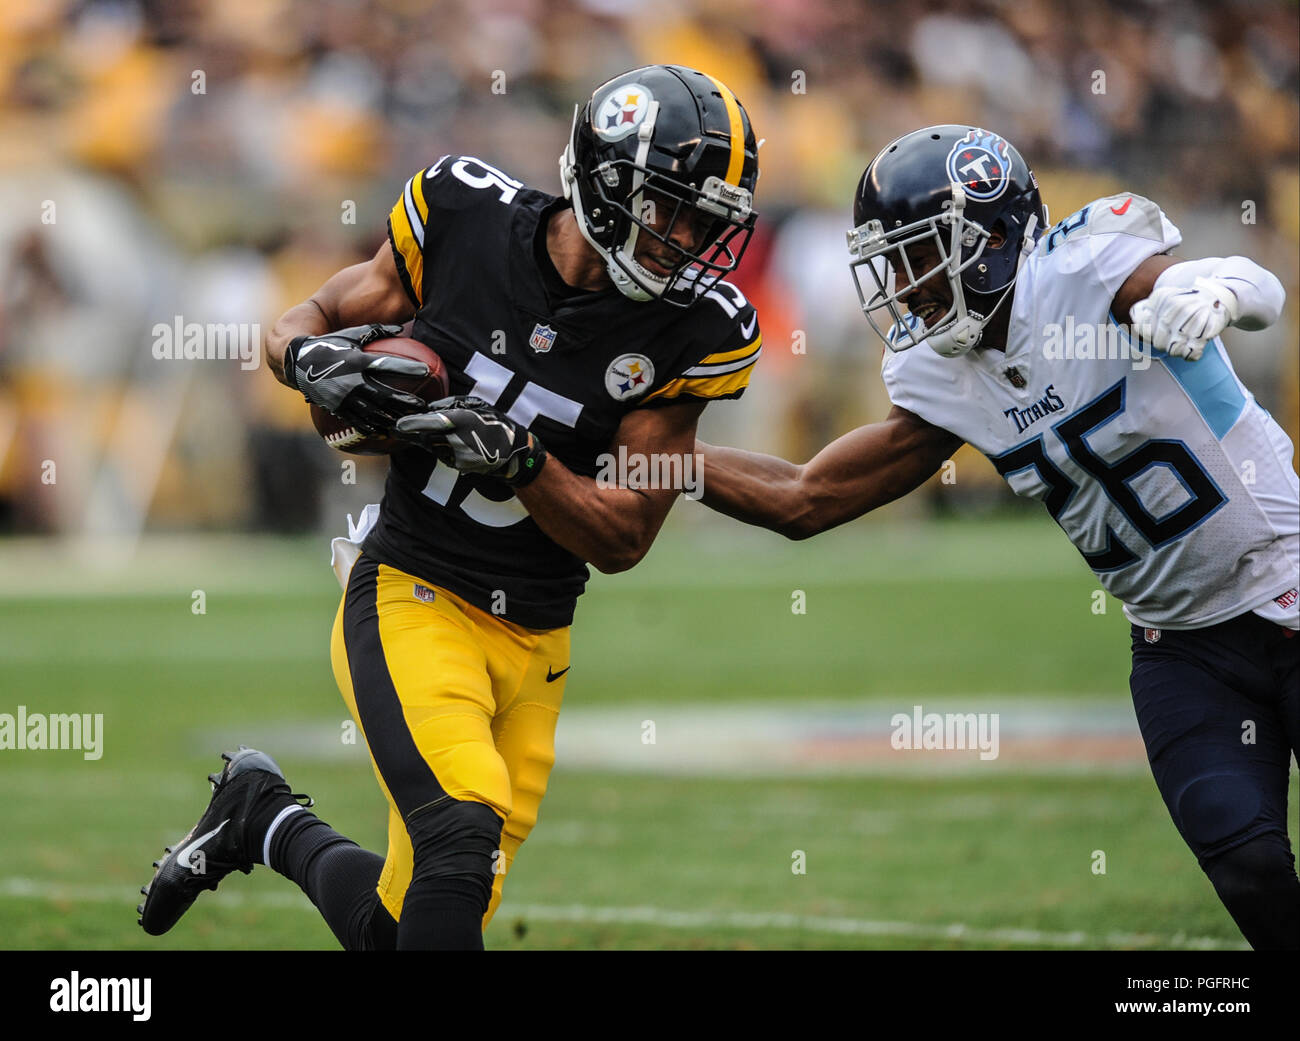 8644e01a7 Pittsburgh, USA. 25 August 2018. Steelers Trey Griffey #15 during the  Pittsburgh